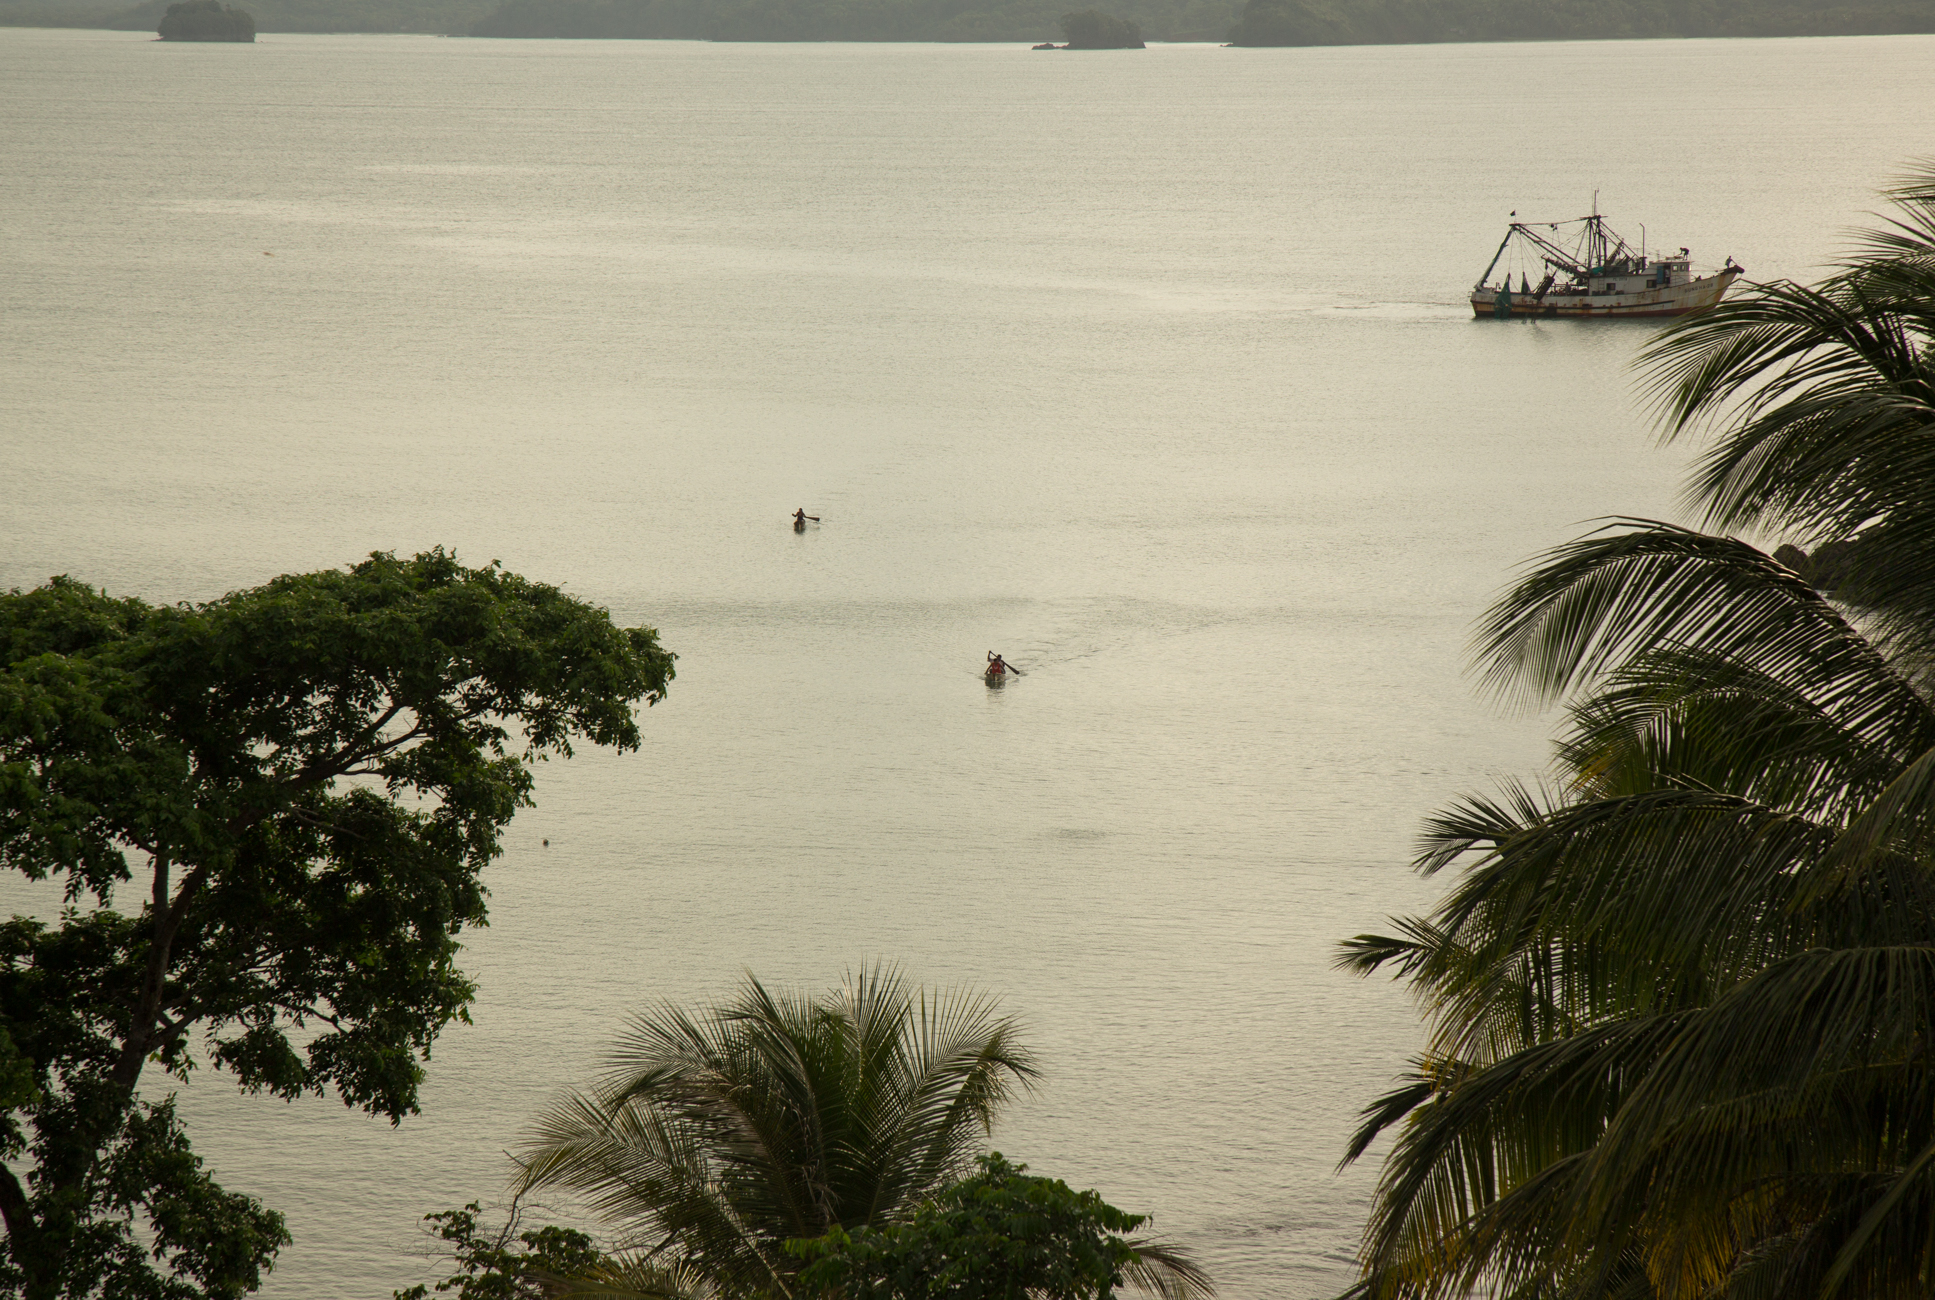 Fisherman paddle back to shore from a shrimping boat off the coast of Monkey point, an afro-kriol community on Nicaragua's southeastern Caribbean coast.